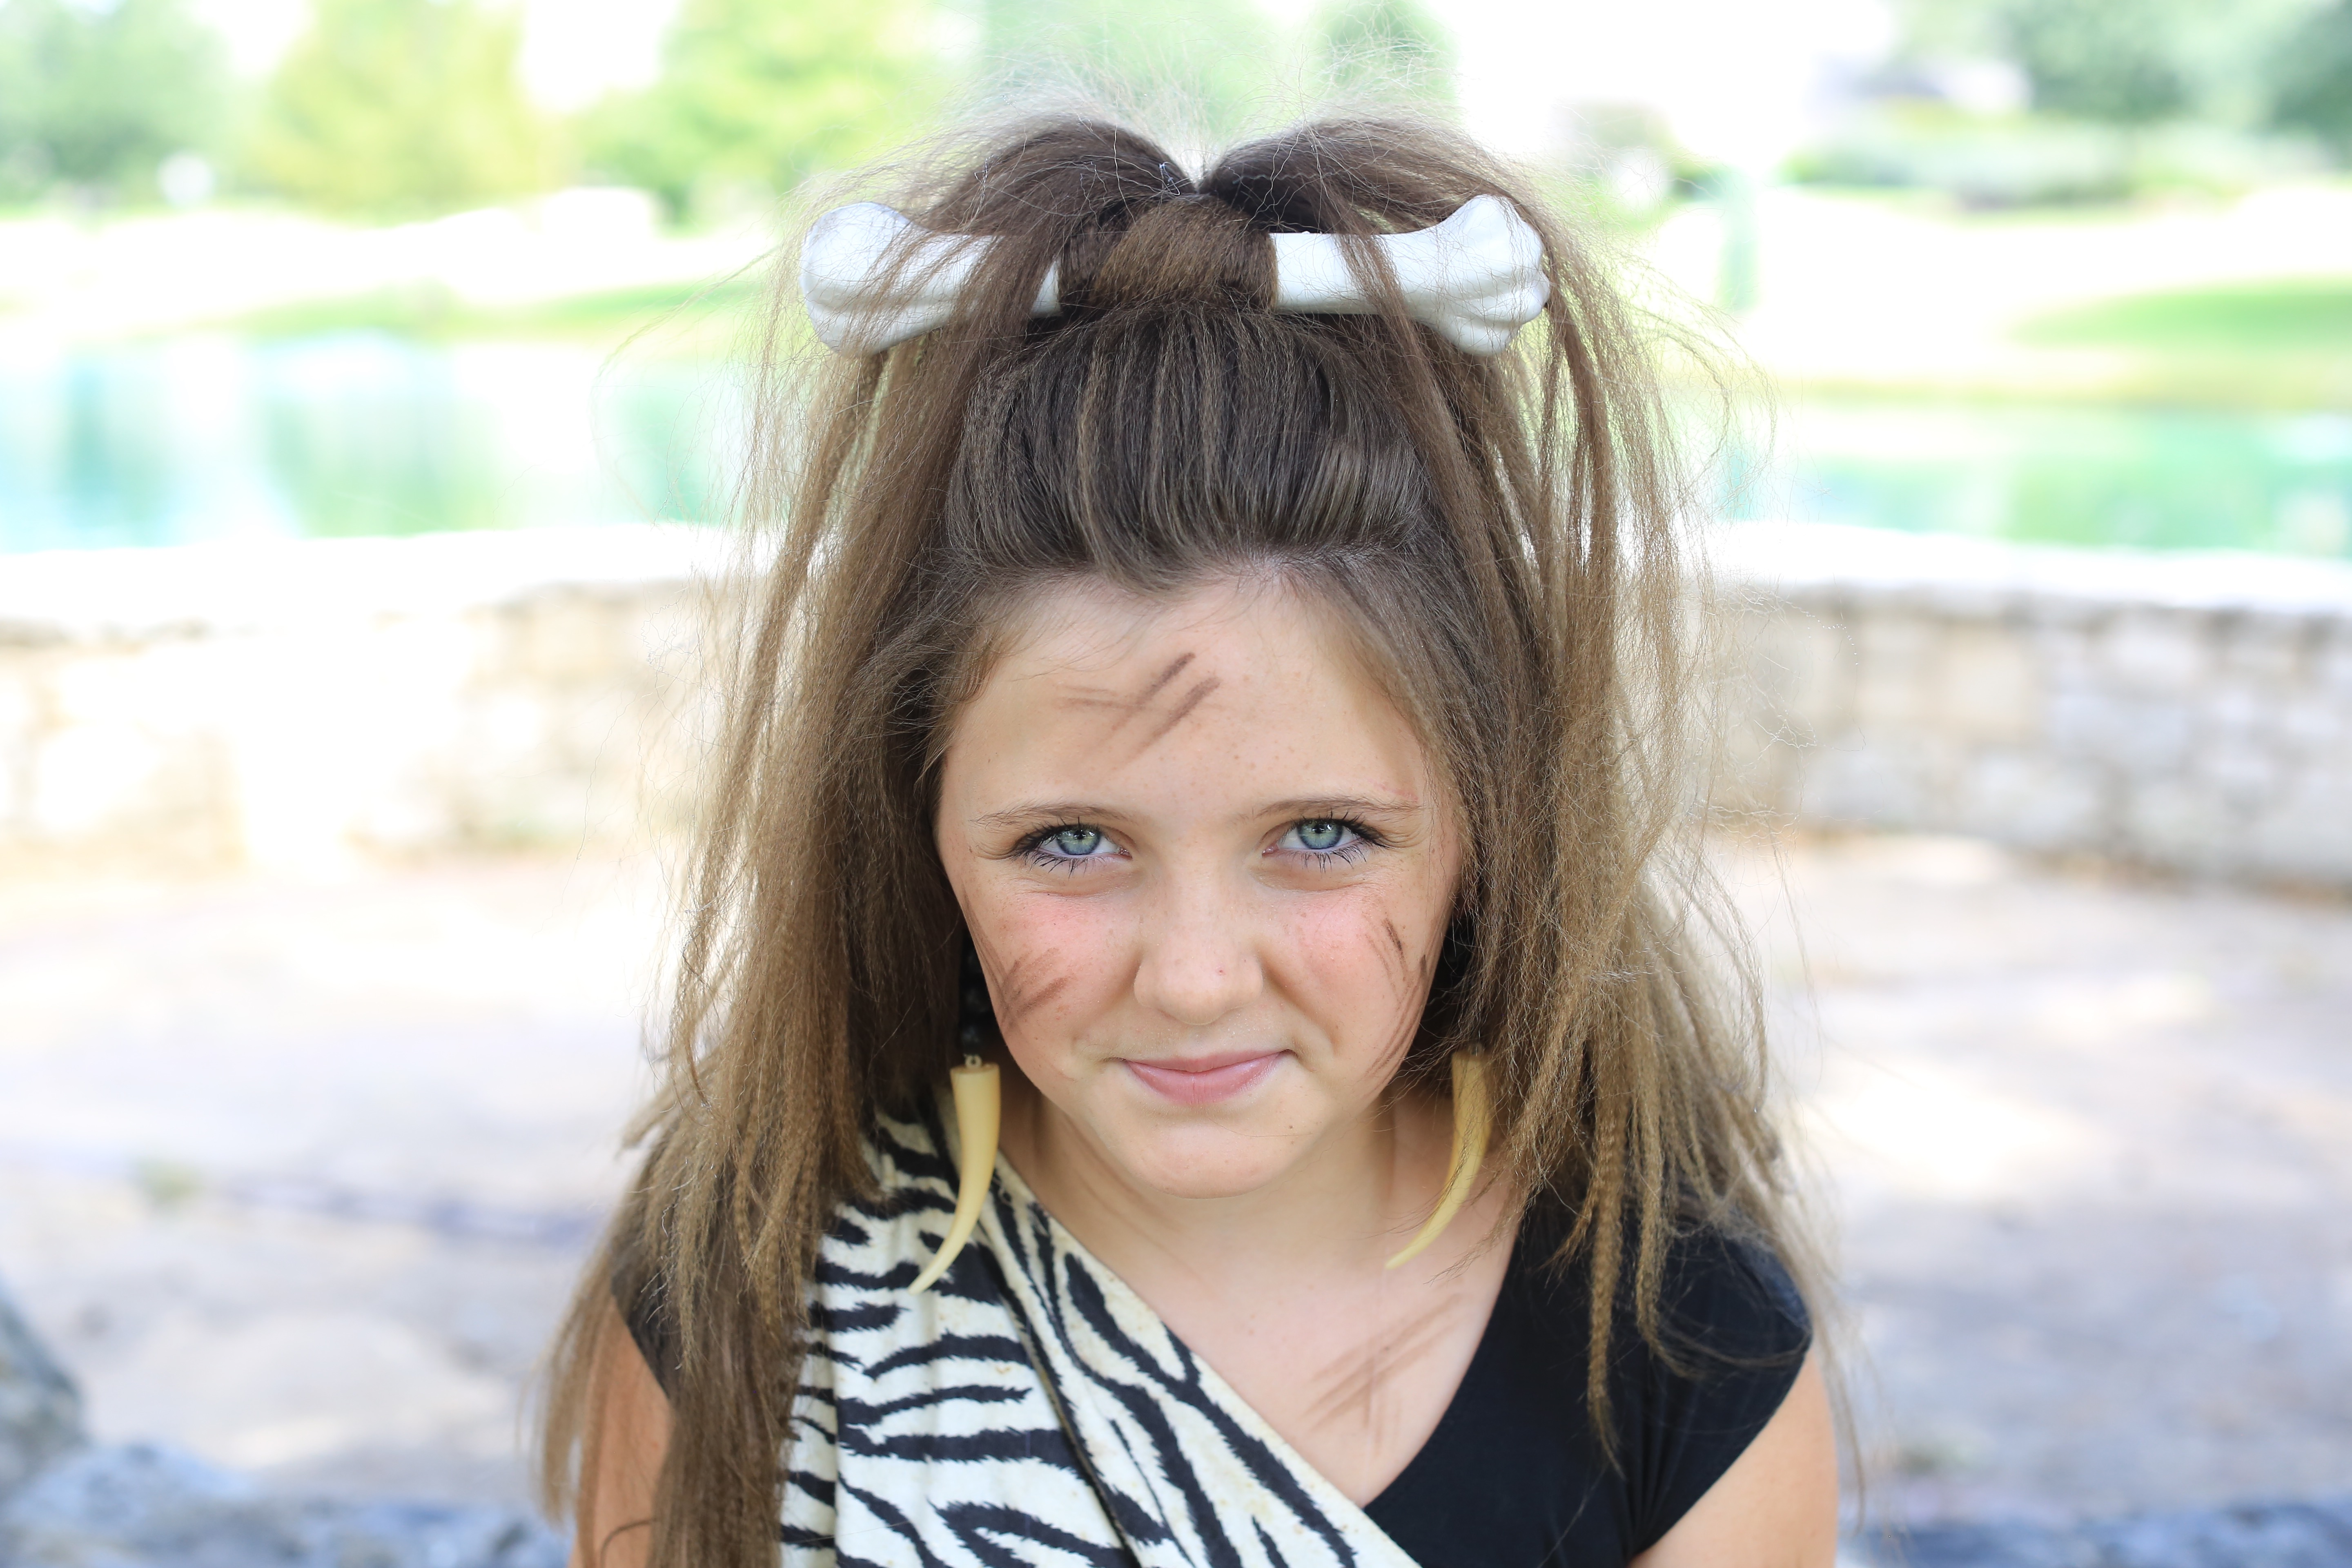 Cave Woman Half-up | Halloween Hairstyle | Cute Girls Hairstyles